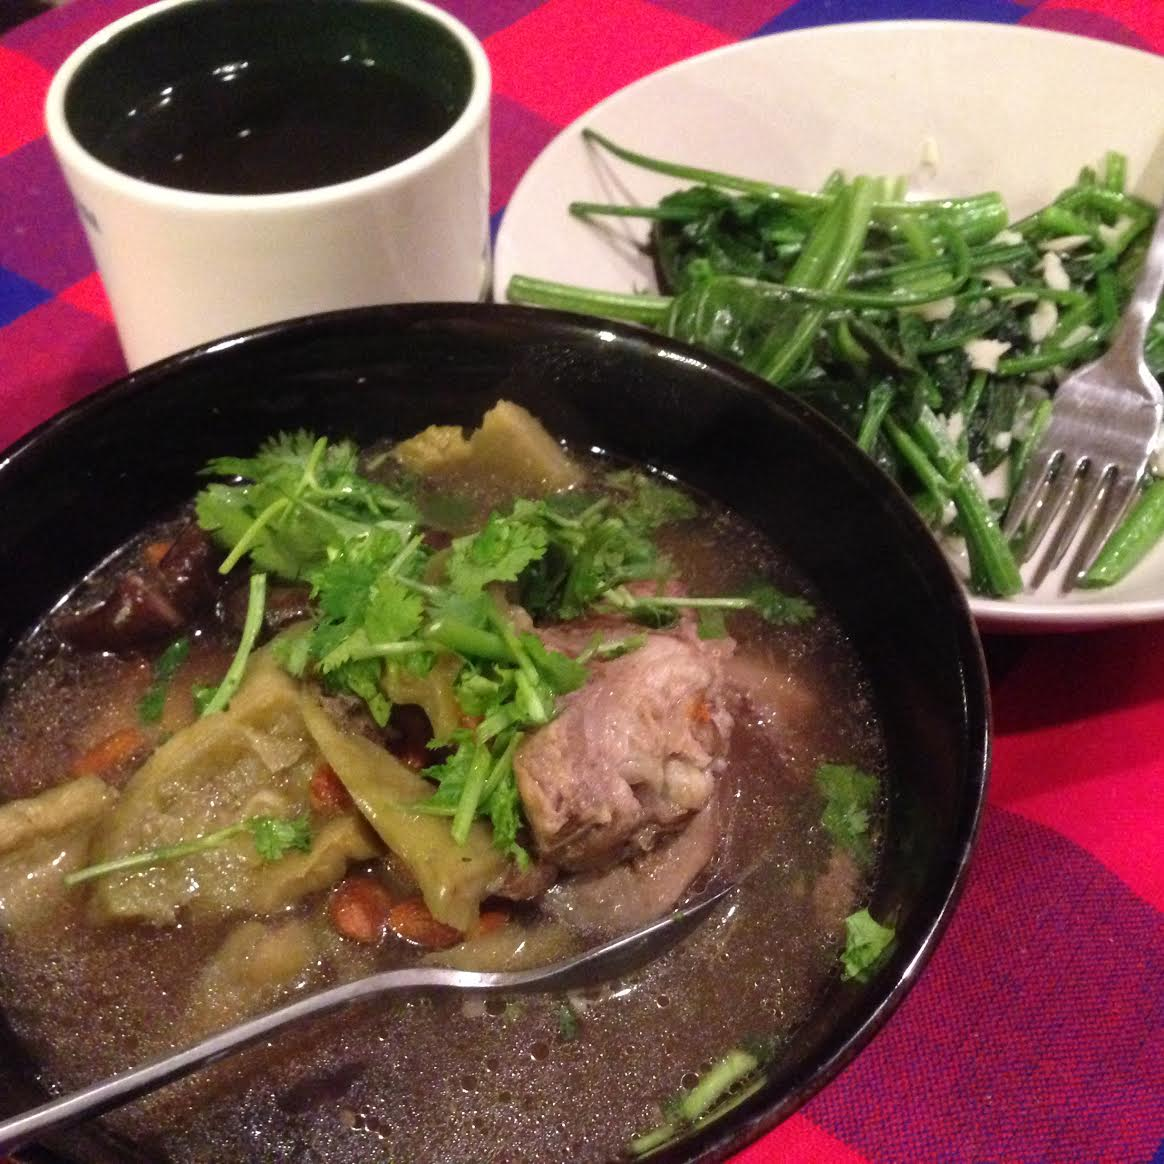 Routine dinner for me:Ku Gua Tang, Water spinach and High Mountain Oolong Tea. Also,ignore the unnecessary cilantro.